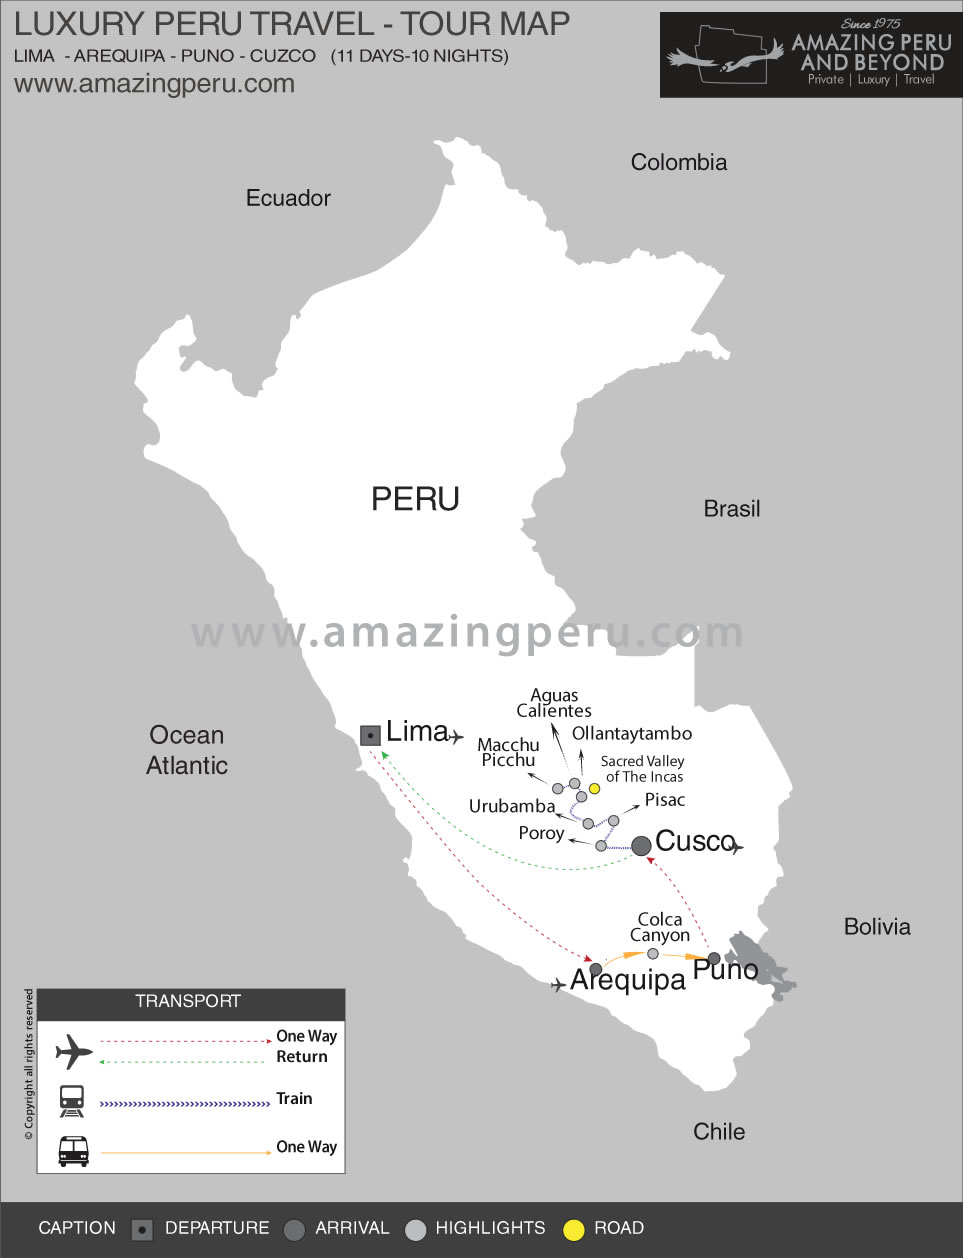 Luxury Southern Peru Tour - Option 1 - 11 days / 10 nights.